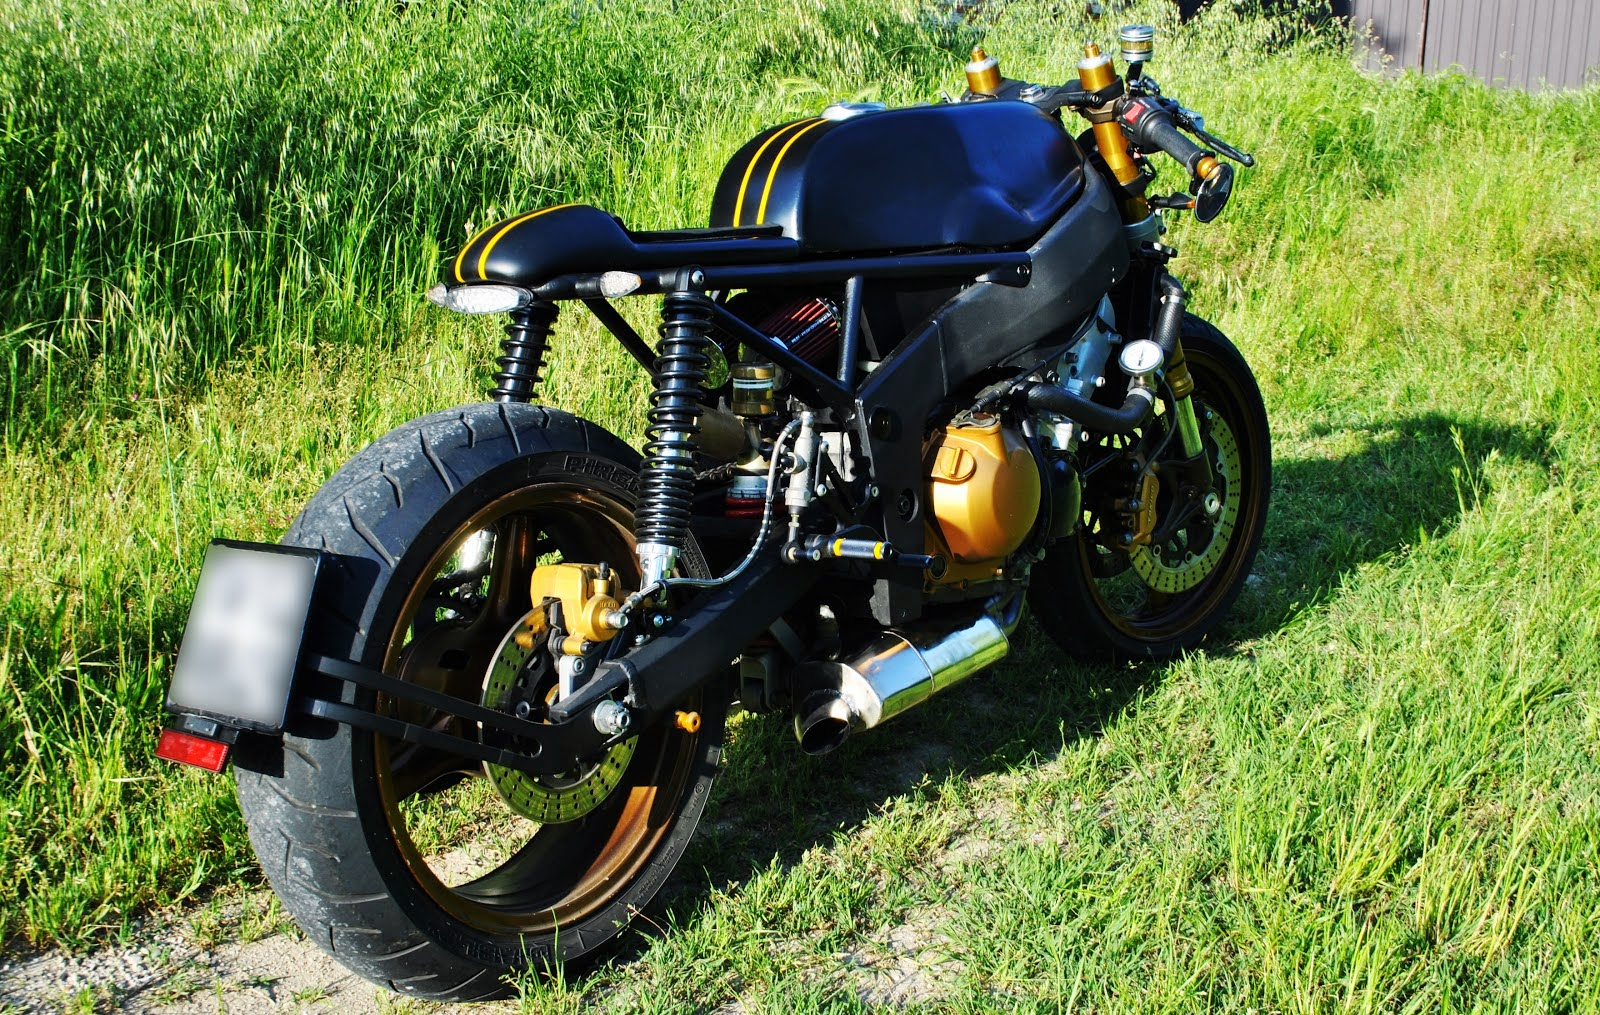 kawasaki zx6r old school cafe racer | 99garage | cafe racers